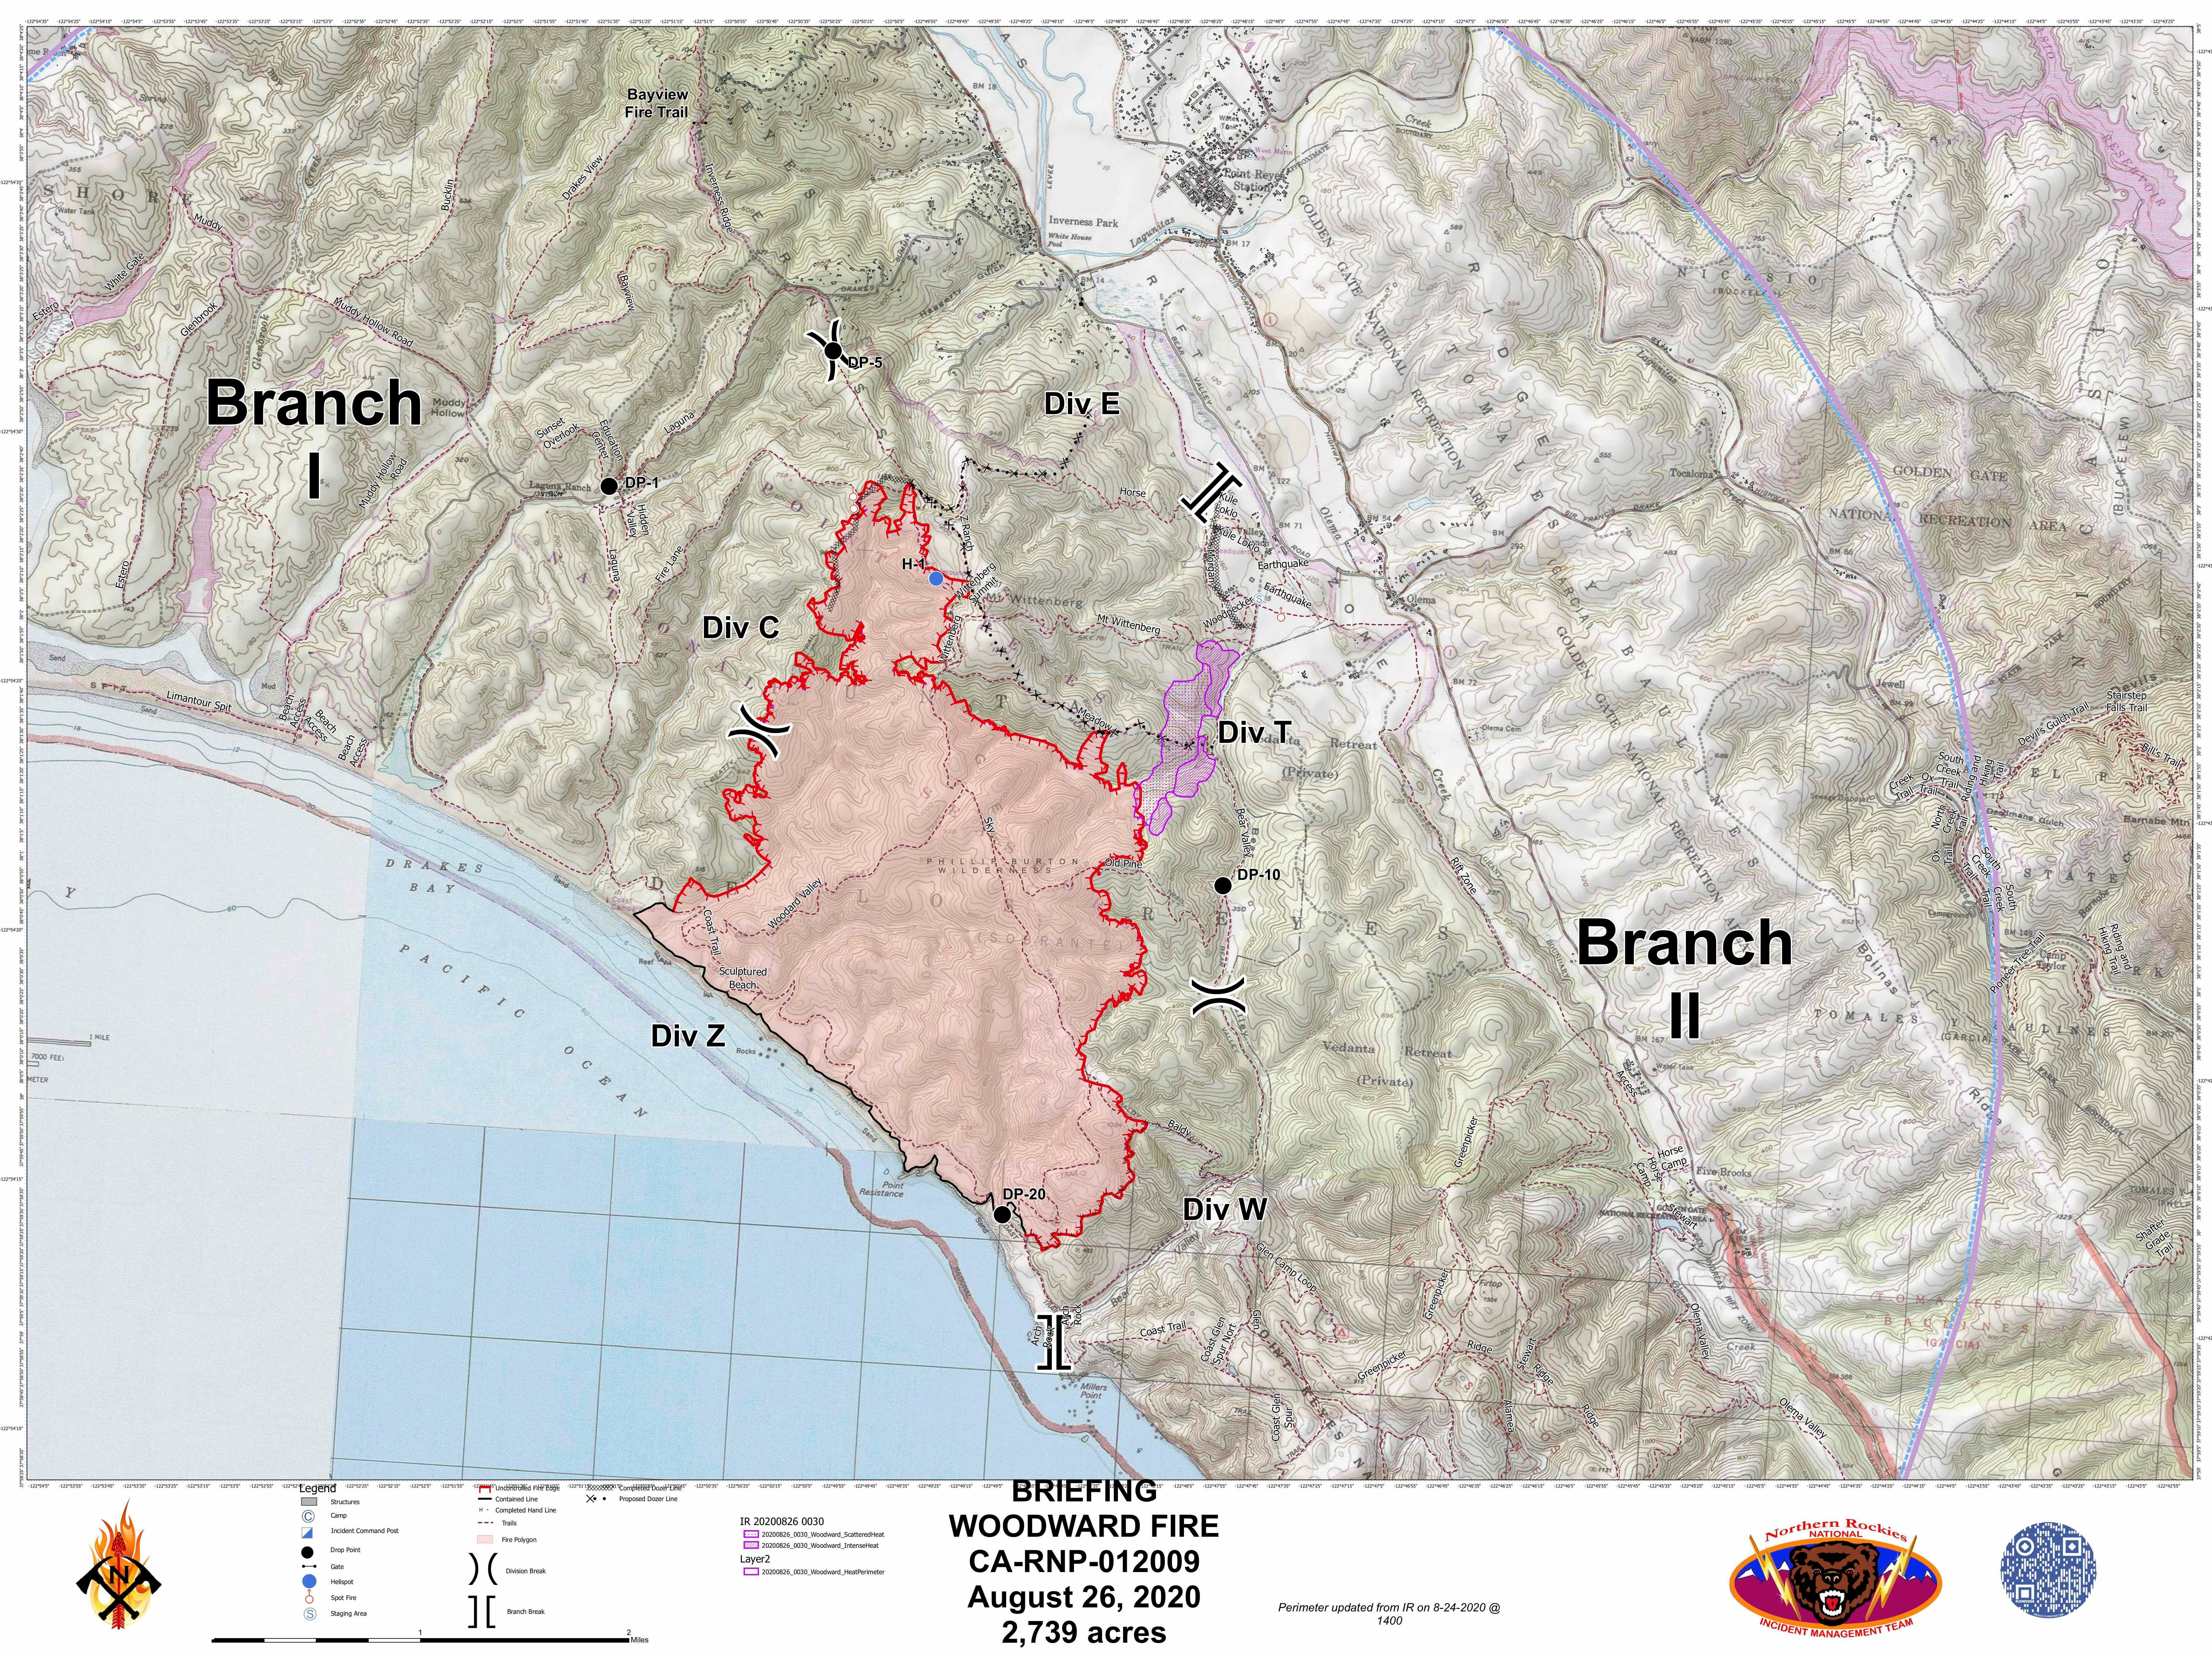 Woodward Fire Boundary Map - Aug 26